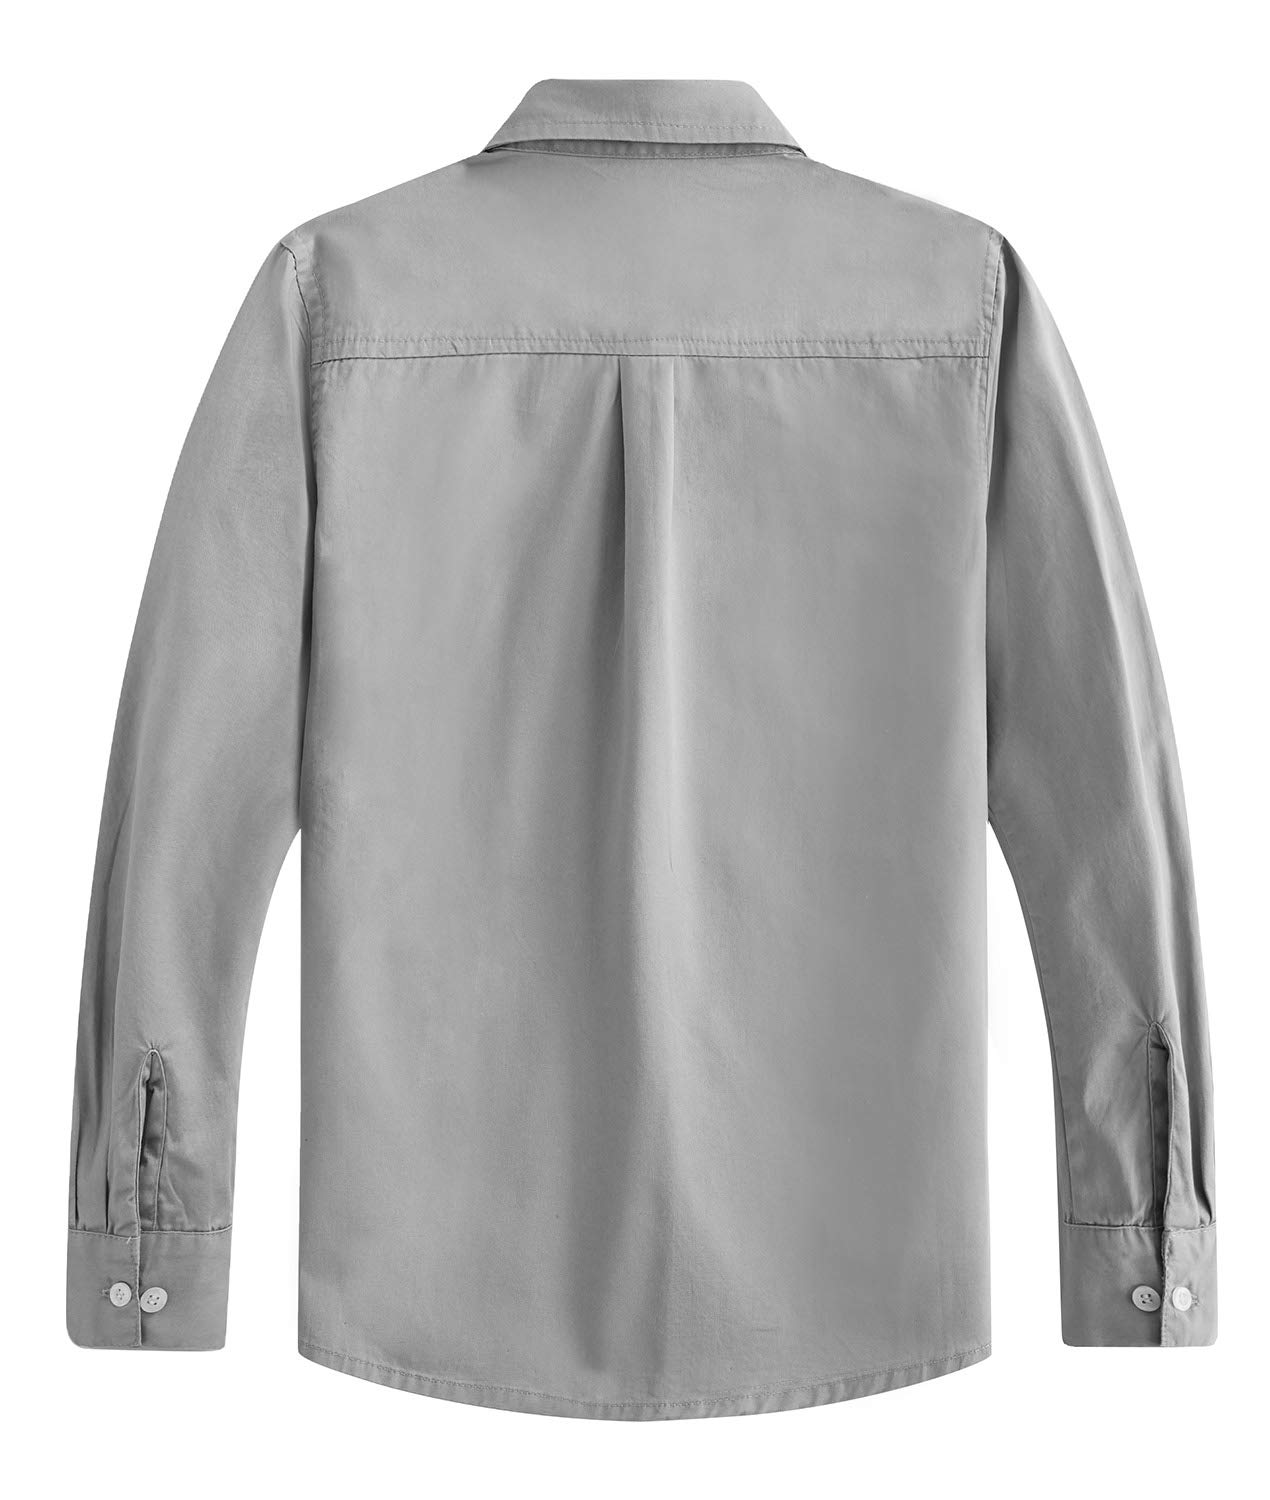 Spring&Gege Boys' Long Sleeve Solid Formal Cotton Twill Dress Shirts Silver 11-12 Years by Spring&Gege (Image #2)